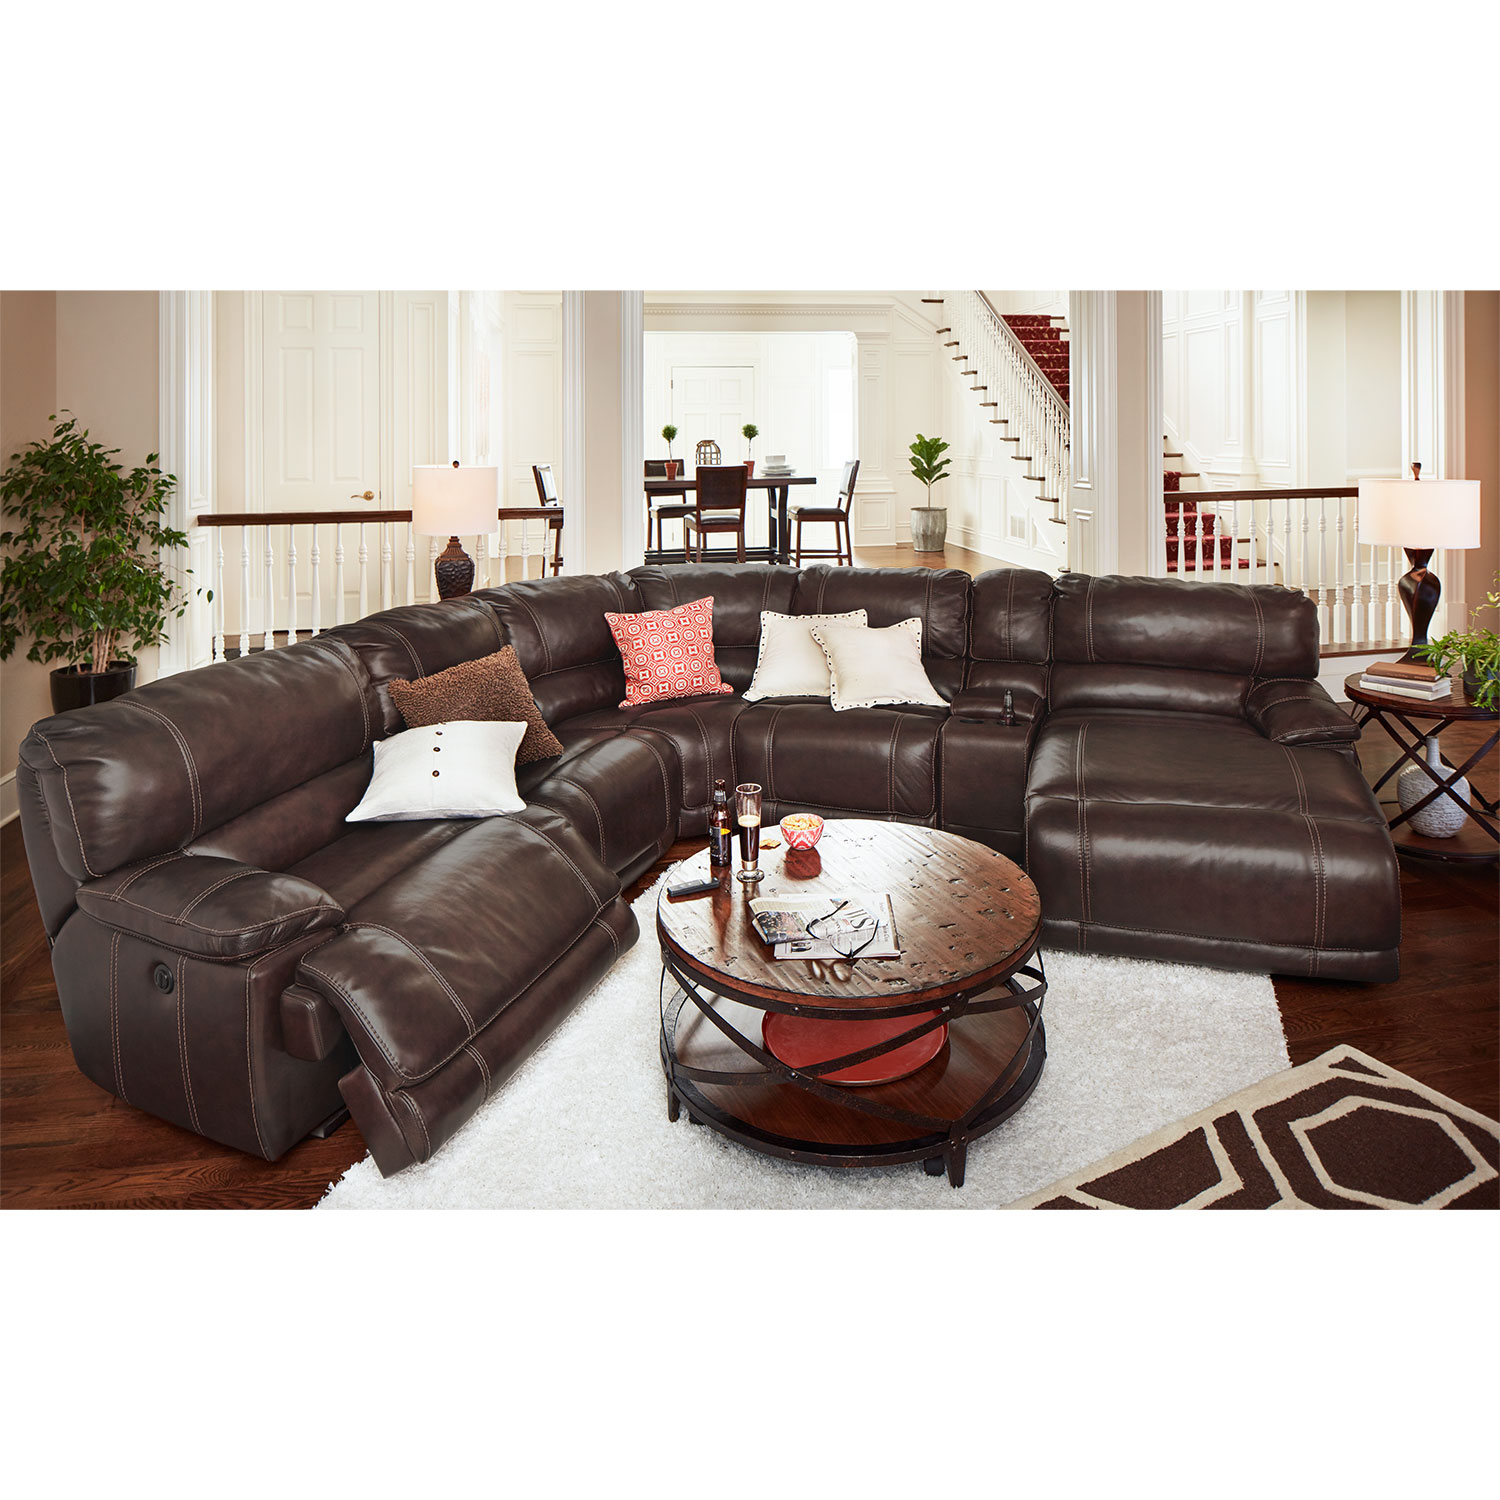 St. Malo 6-Piece Power Reclining Sectional with Right-Facing Chaise - Brown by One80  sc 1 st  Value City Furniture & St. Malo 6-Piece Power Reclining Sectional with Right-Facing ... islam-shia.org